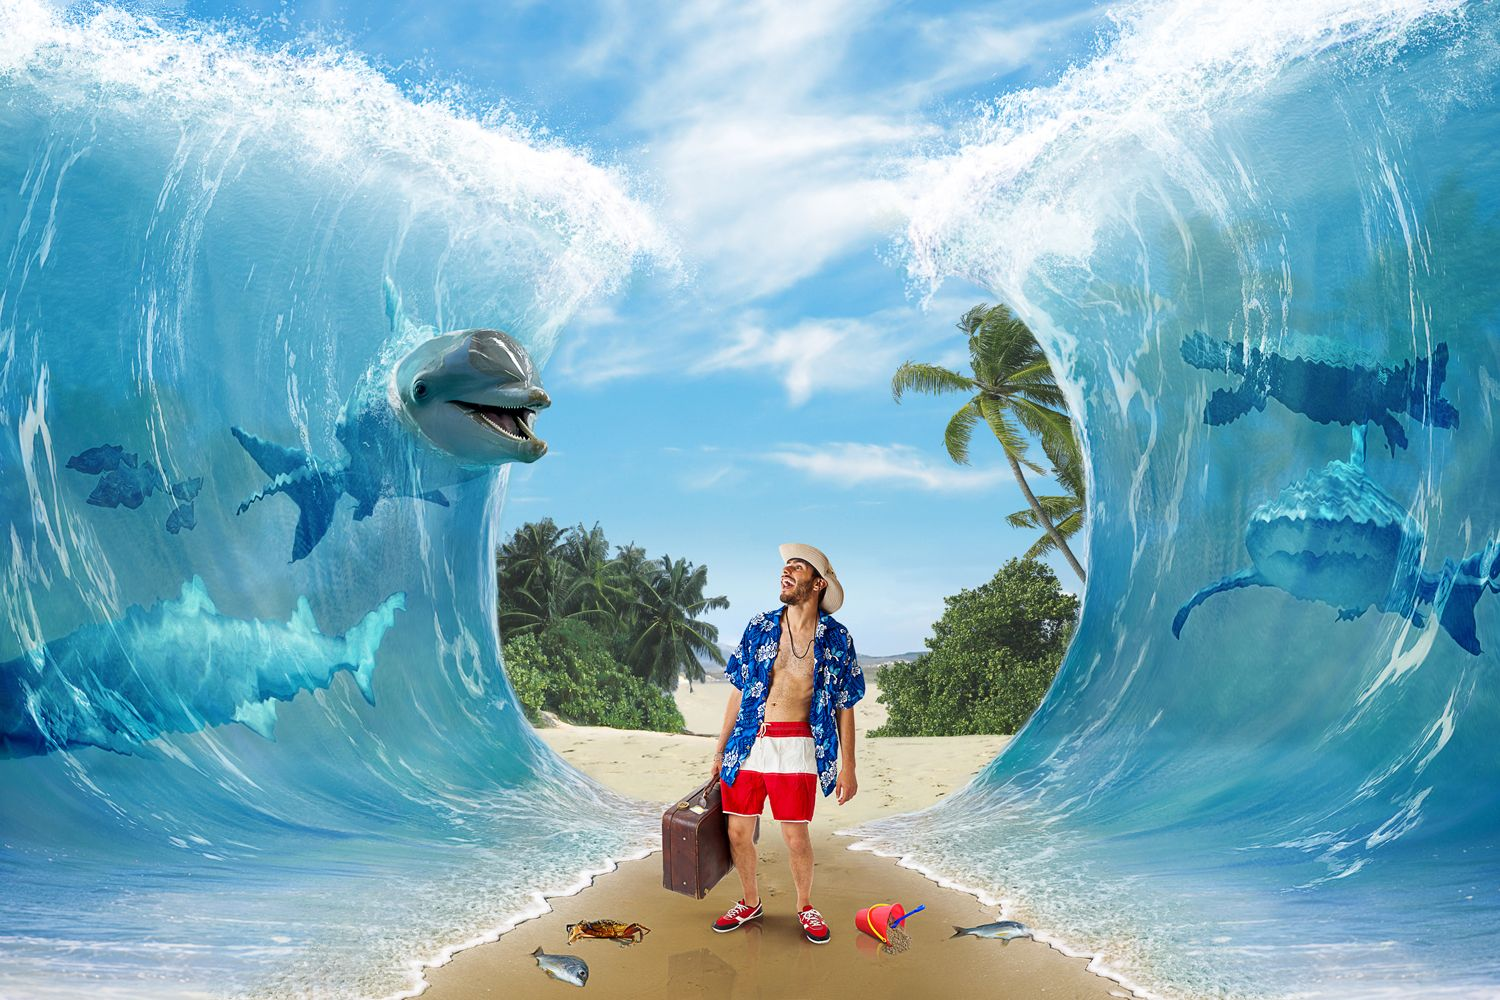 """Create a Surreal """"Parting of the Sea"""" Photoshop Photo Manipulation"""